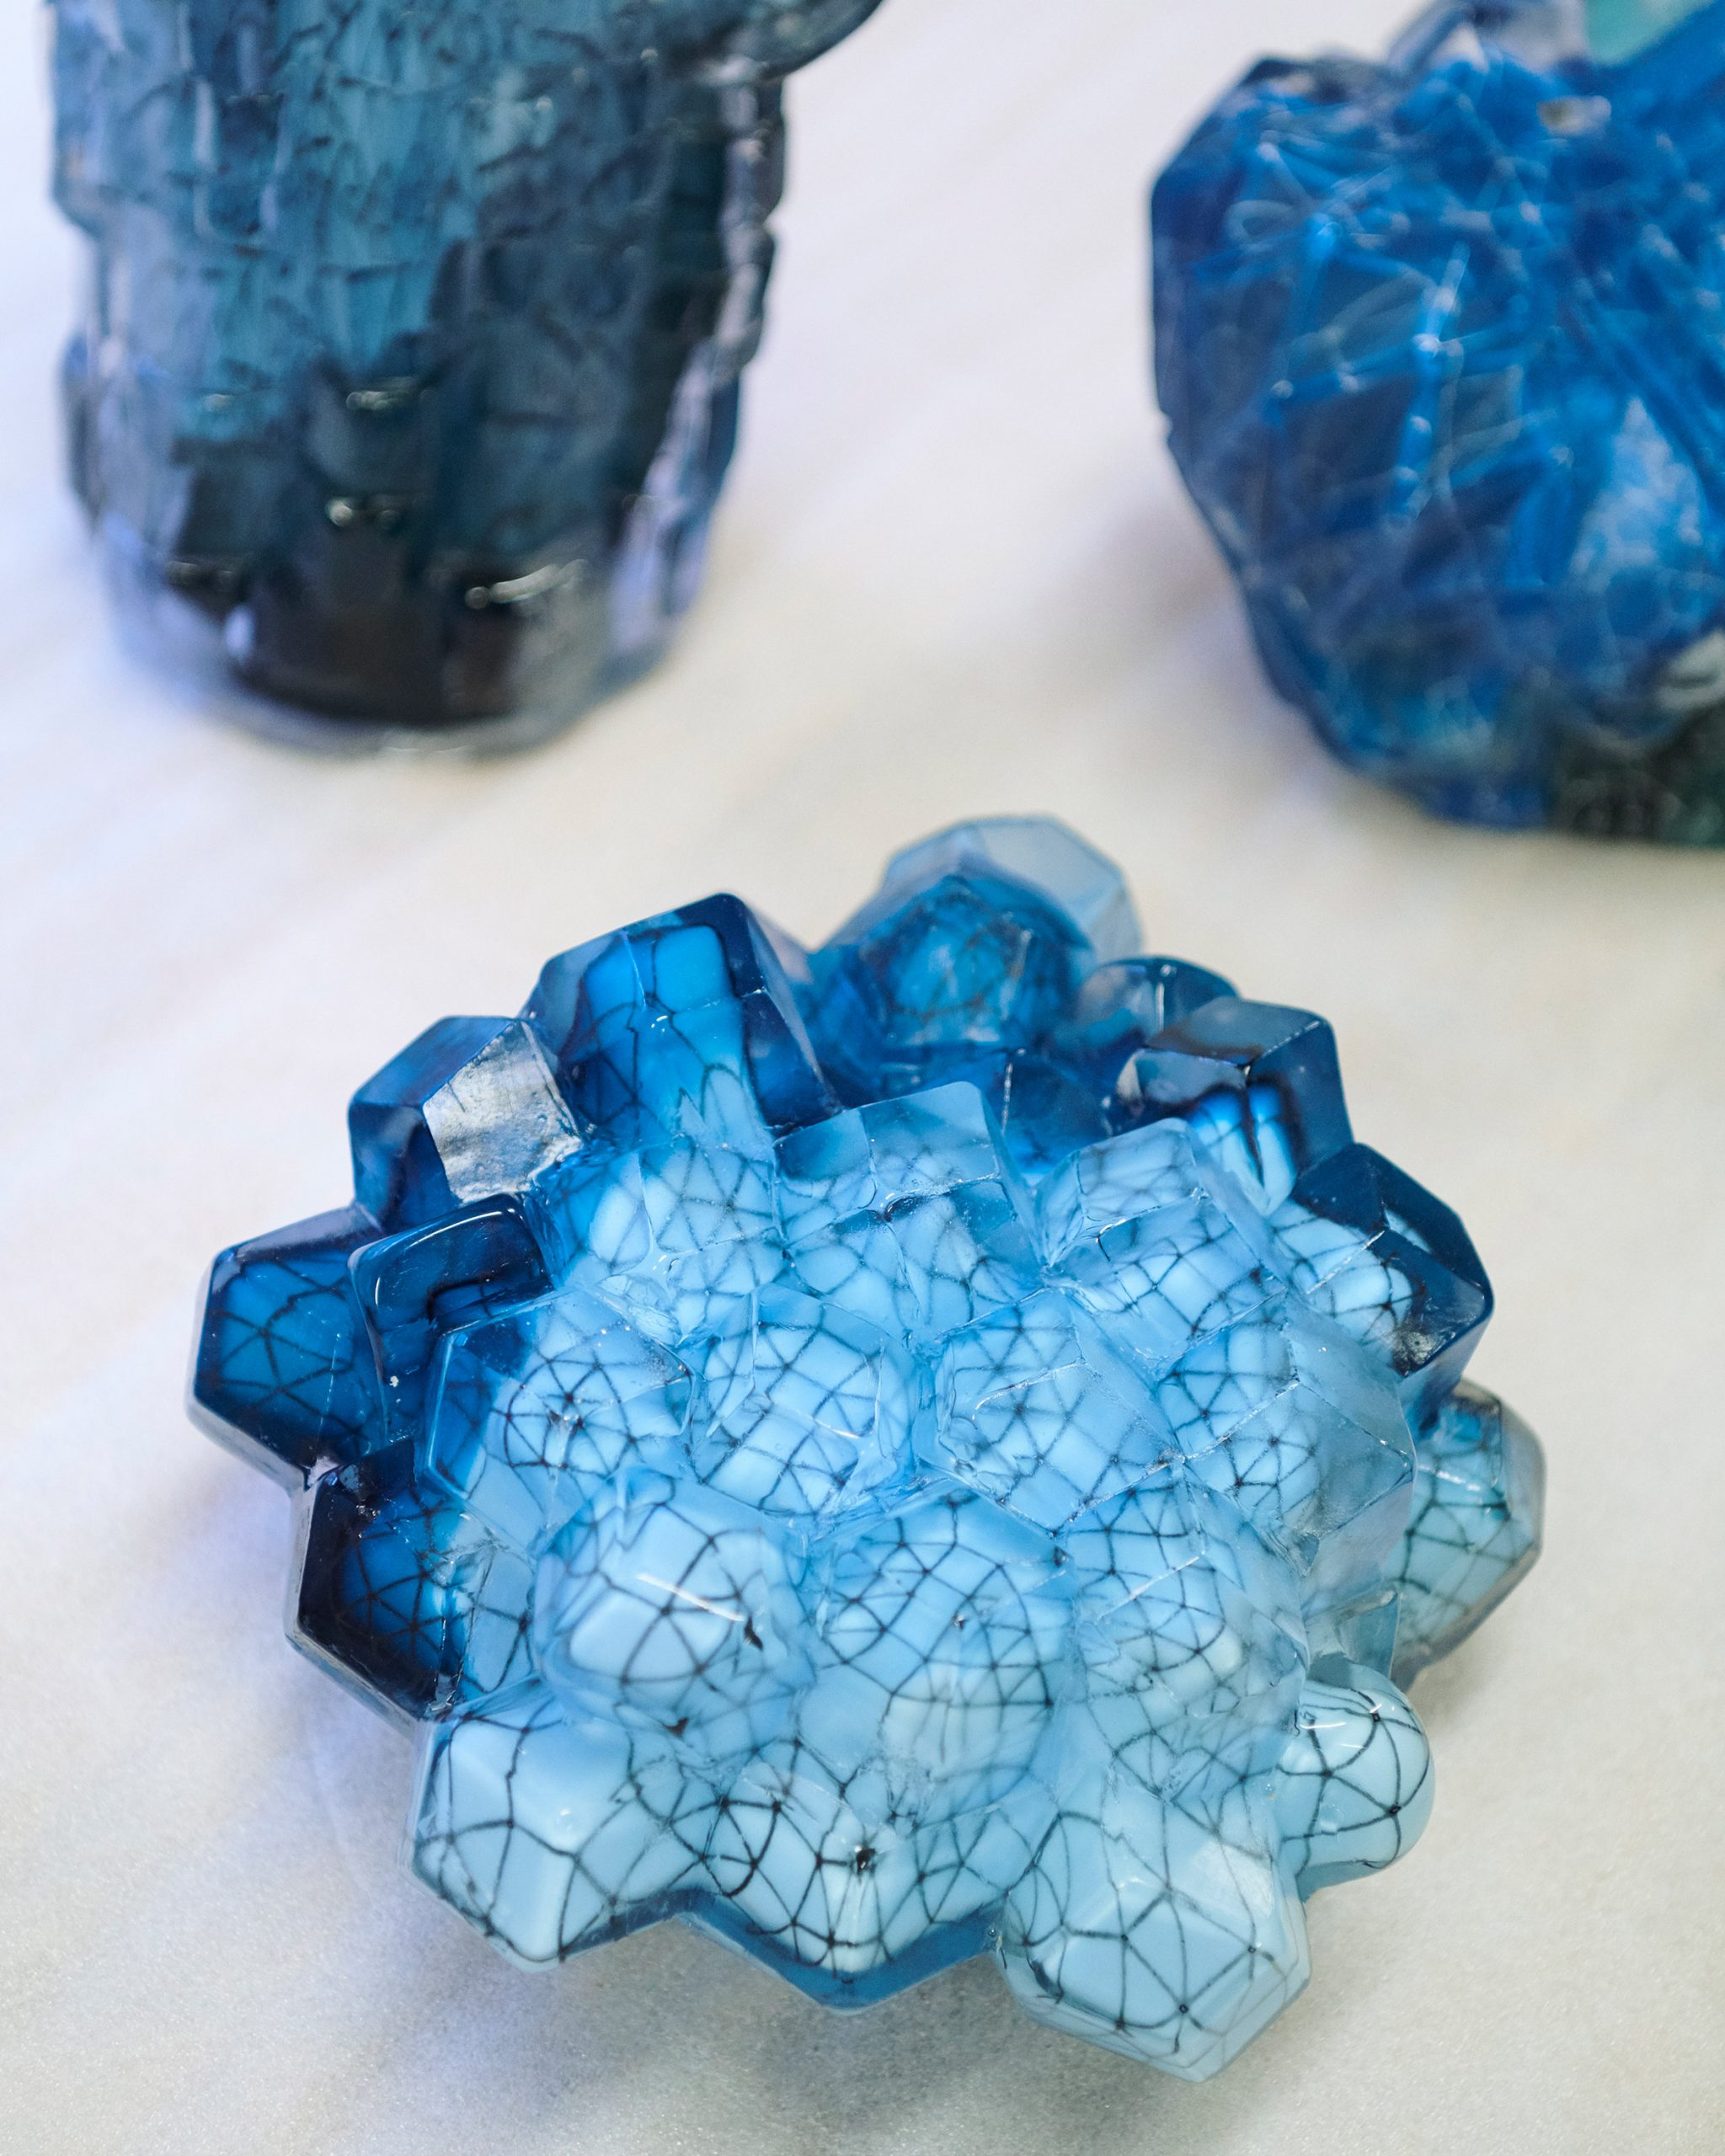 Architectural Glass Fantasies by Stine Bidstrup in The Mindcraft Project